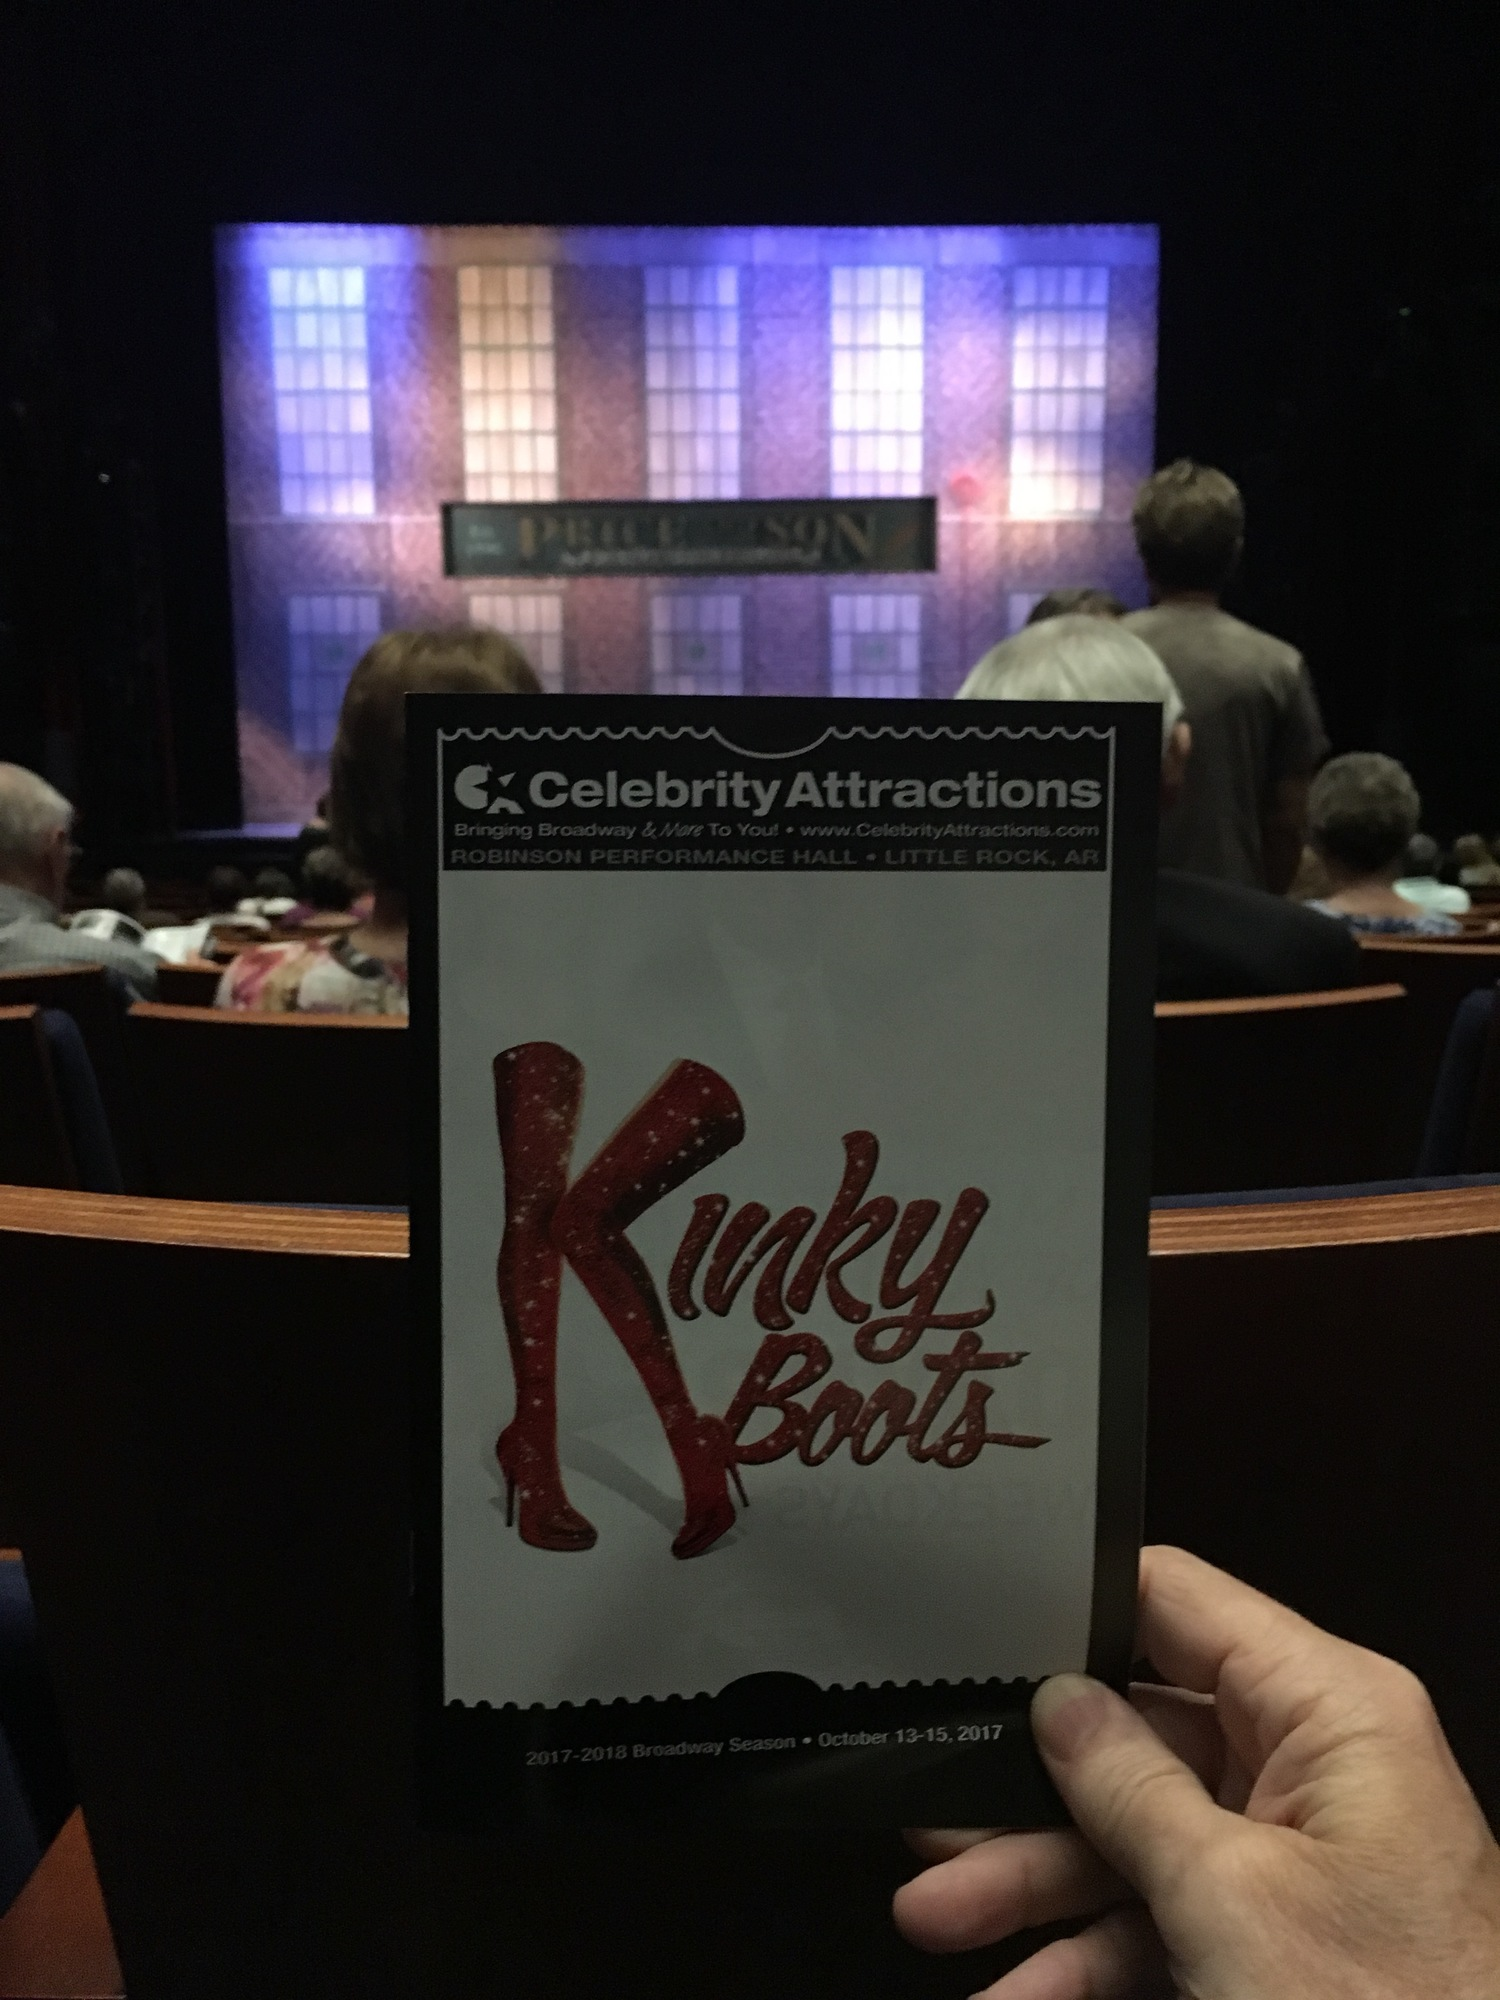 BWW Review: KINKY BOOTS at Robinson Performance Hall-The Most Beautiful Thing in the World is watching this amazing cast shine like a sequined covered stiletto!